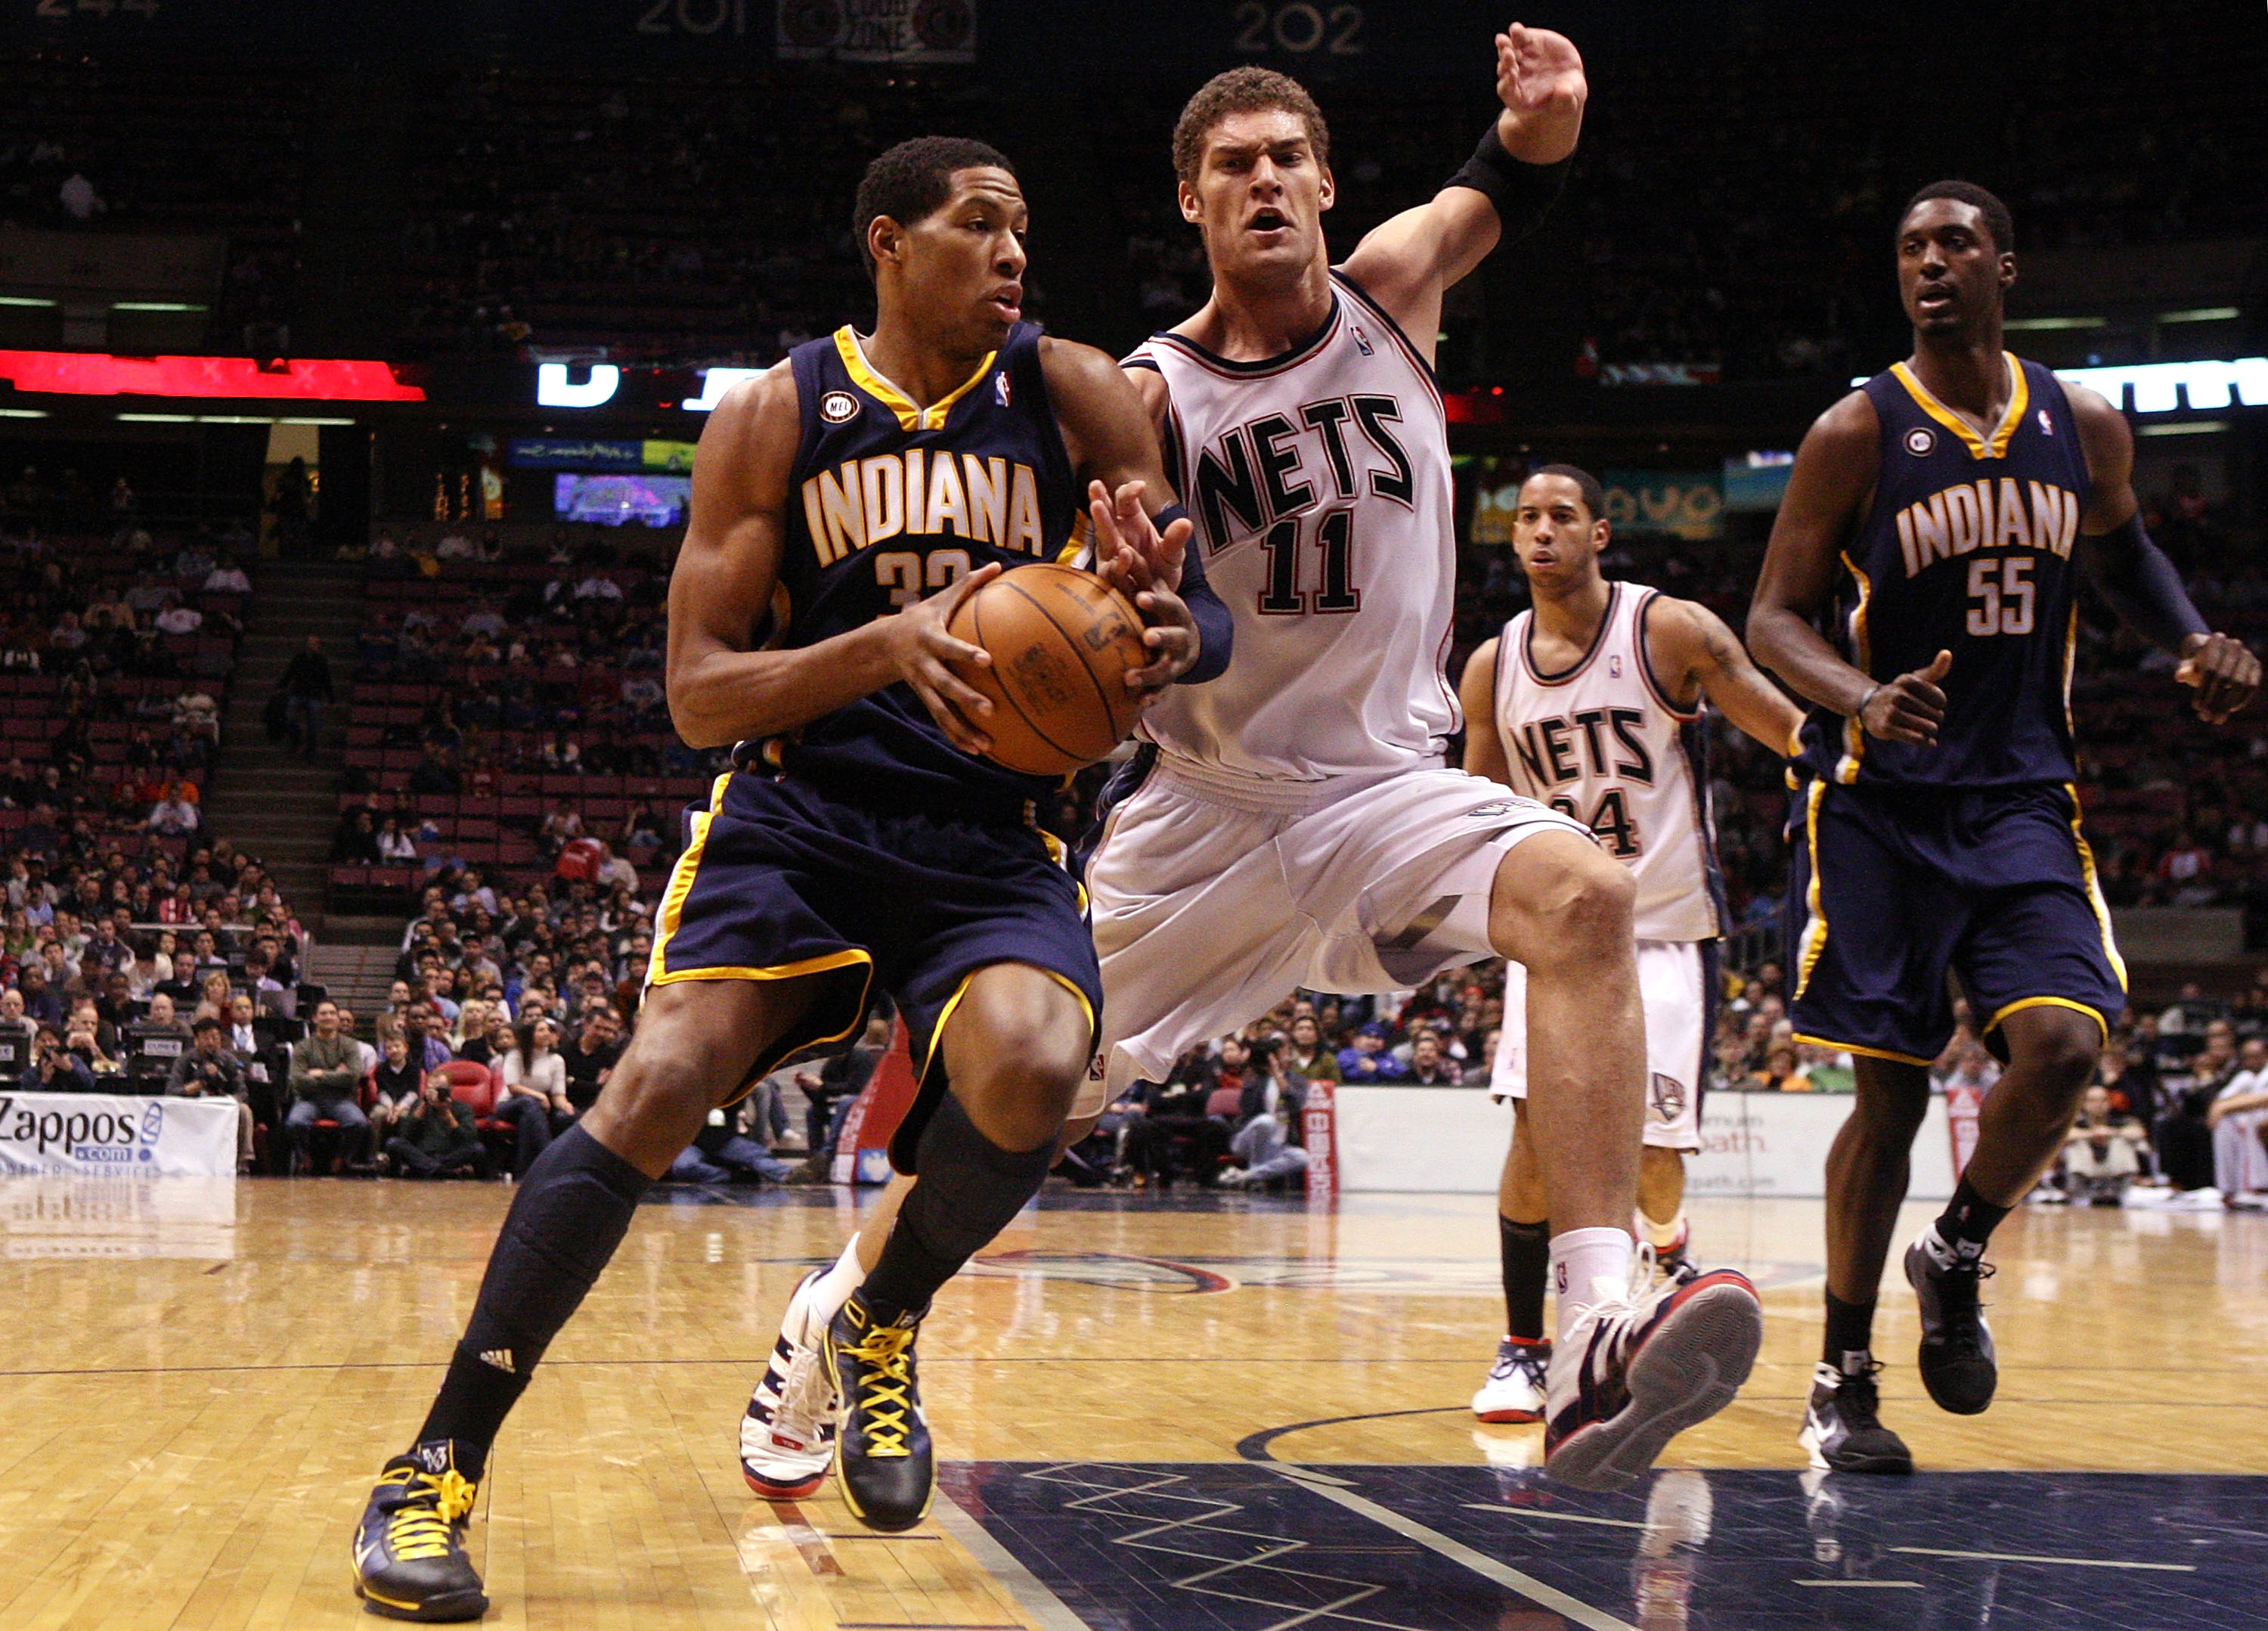 EAST RUTHERFORD, NJ - JANUARY 15:  Danny Granger #33 of the Indiana Pacers drives against Brook Lopez #11 of the New Jersey Nets at the Izod Center on January 15, 2010 in East Rutherford, New Jersey. NOTE TO USER: User expressly acknowledges and agrees th